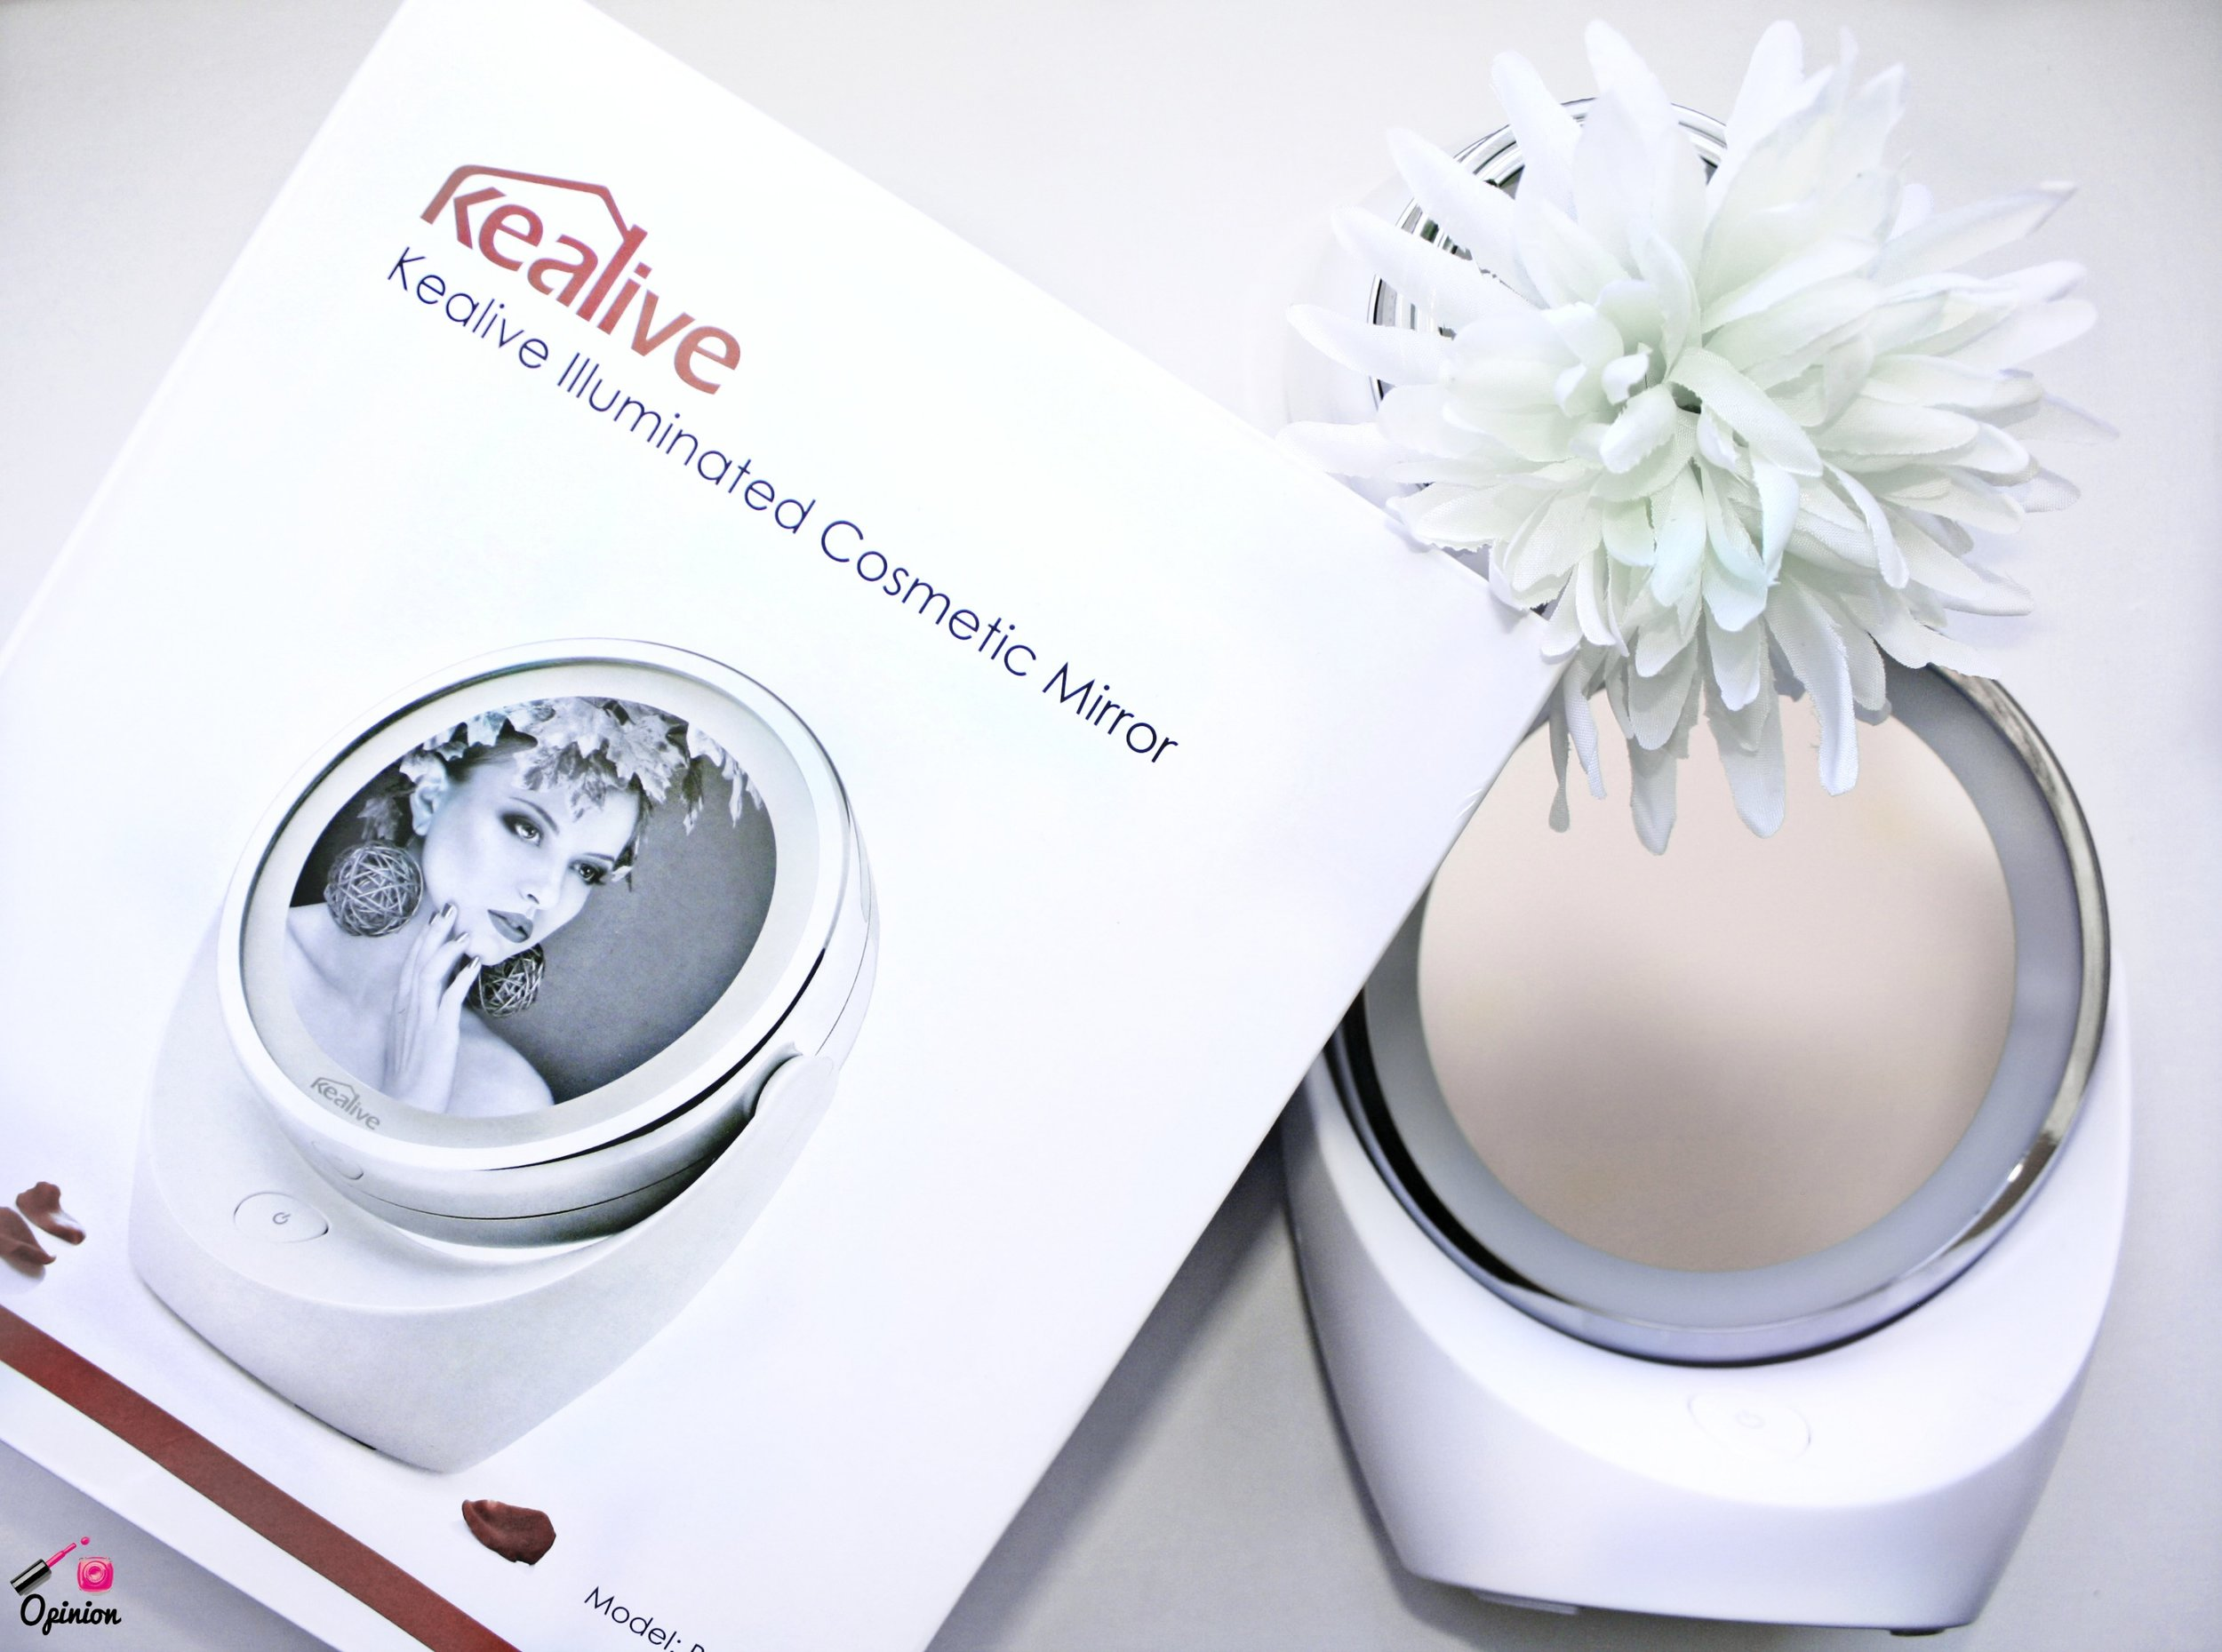 Need a mirror that's magnified? Lights up? And is compact and ready to go when you are!? Then the Kealive Illuminated Cosmetic Mirror is the way to go! CLICK HERE to learn more!